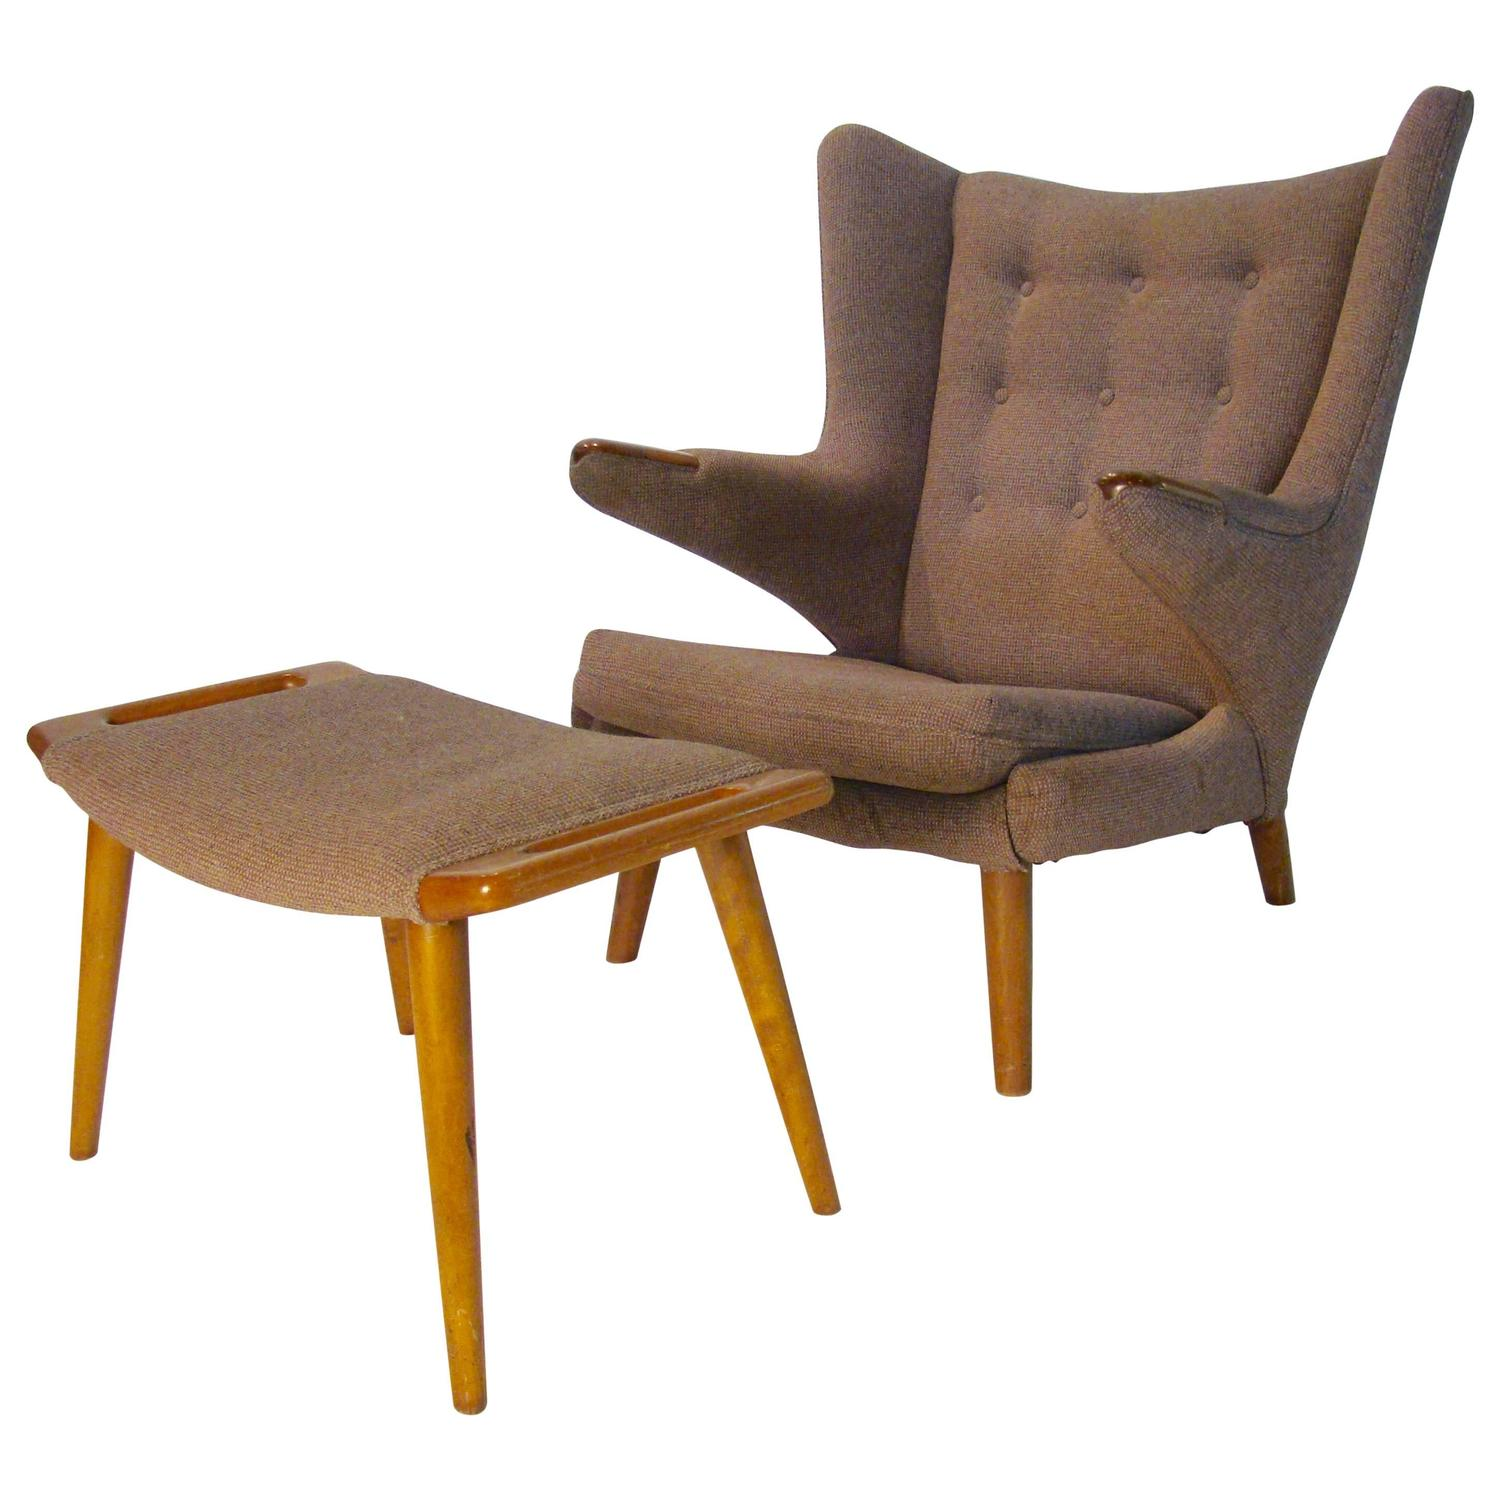 Iconic papa bear chair and ottoman by hans wegner for ap Iconic chair and ottoman